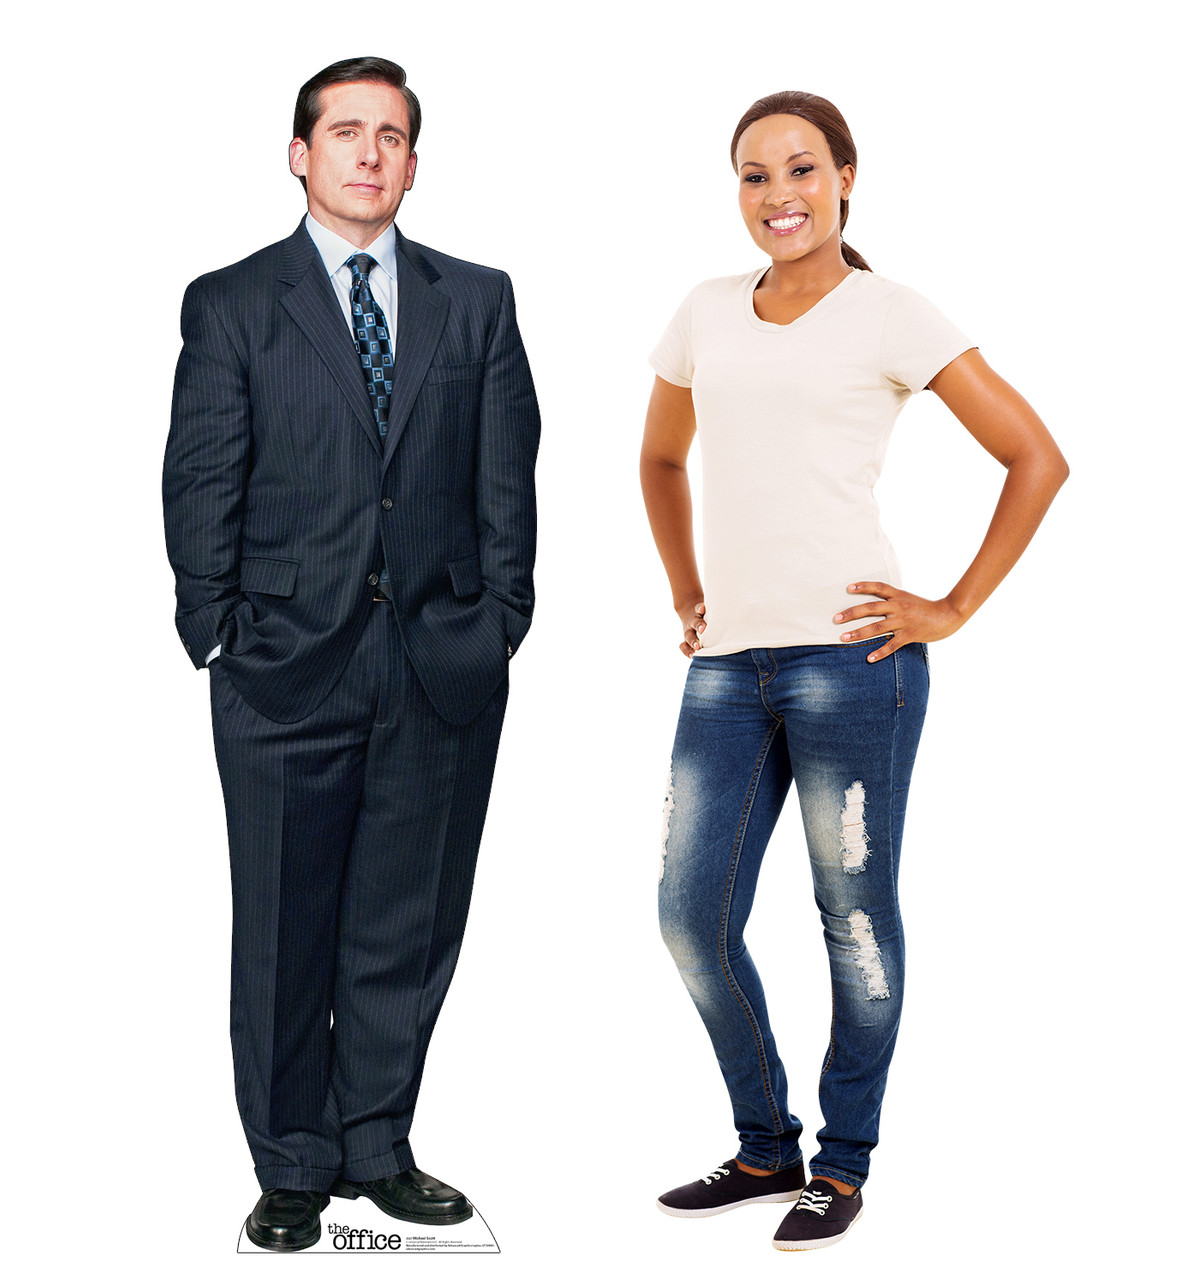 Life-size cardboard standee of Michael Scott from the Office TV show with model.